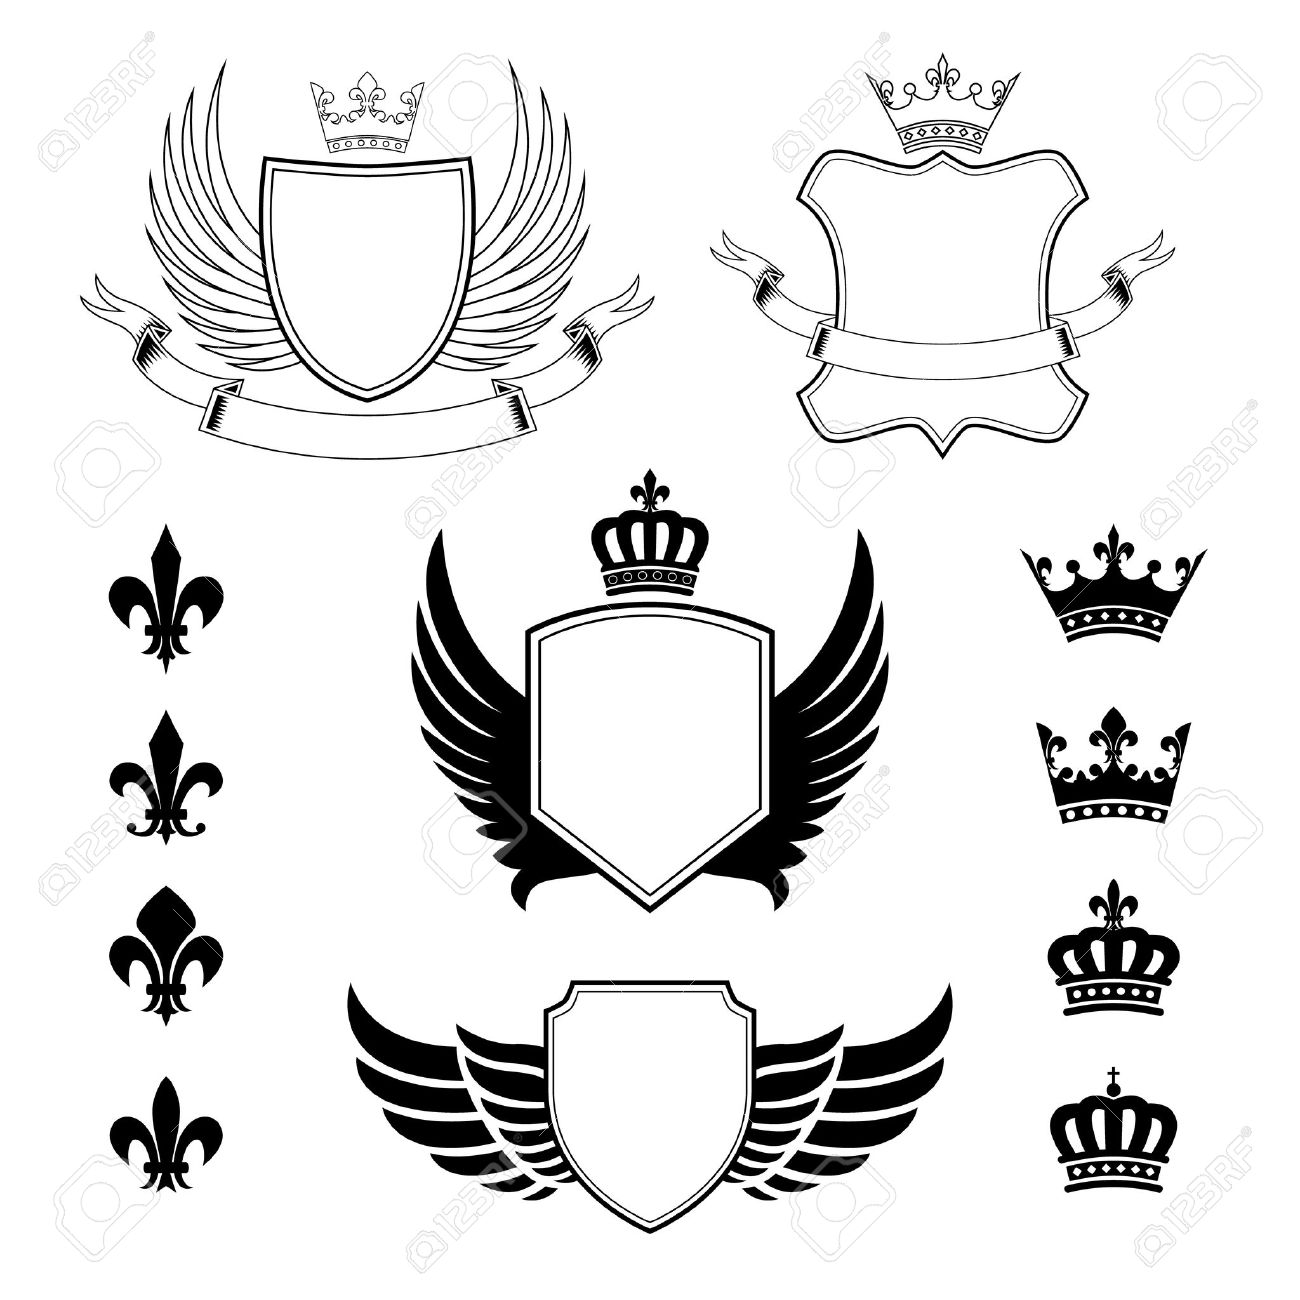 Set Of Winged Shields - Coat Of Arms - Heraldic Design Elements ...